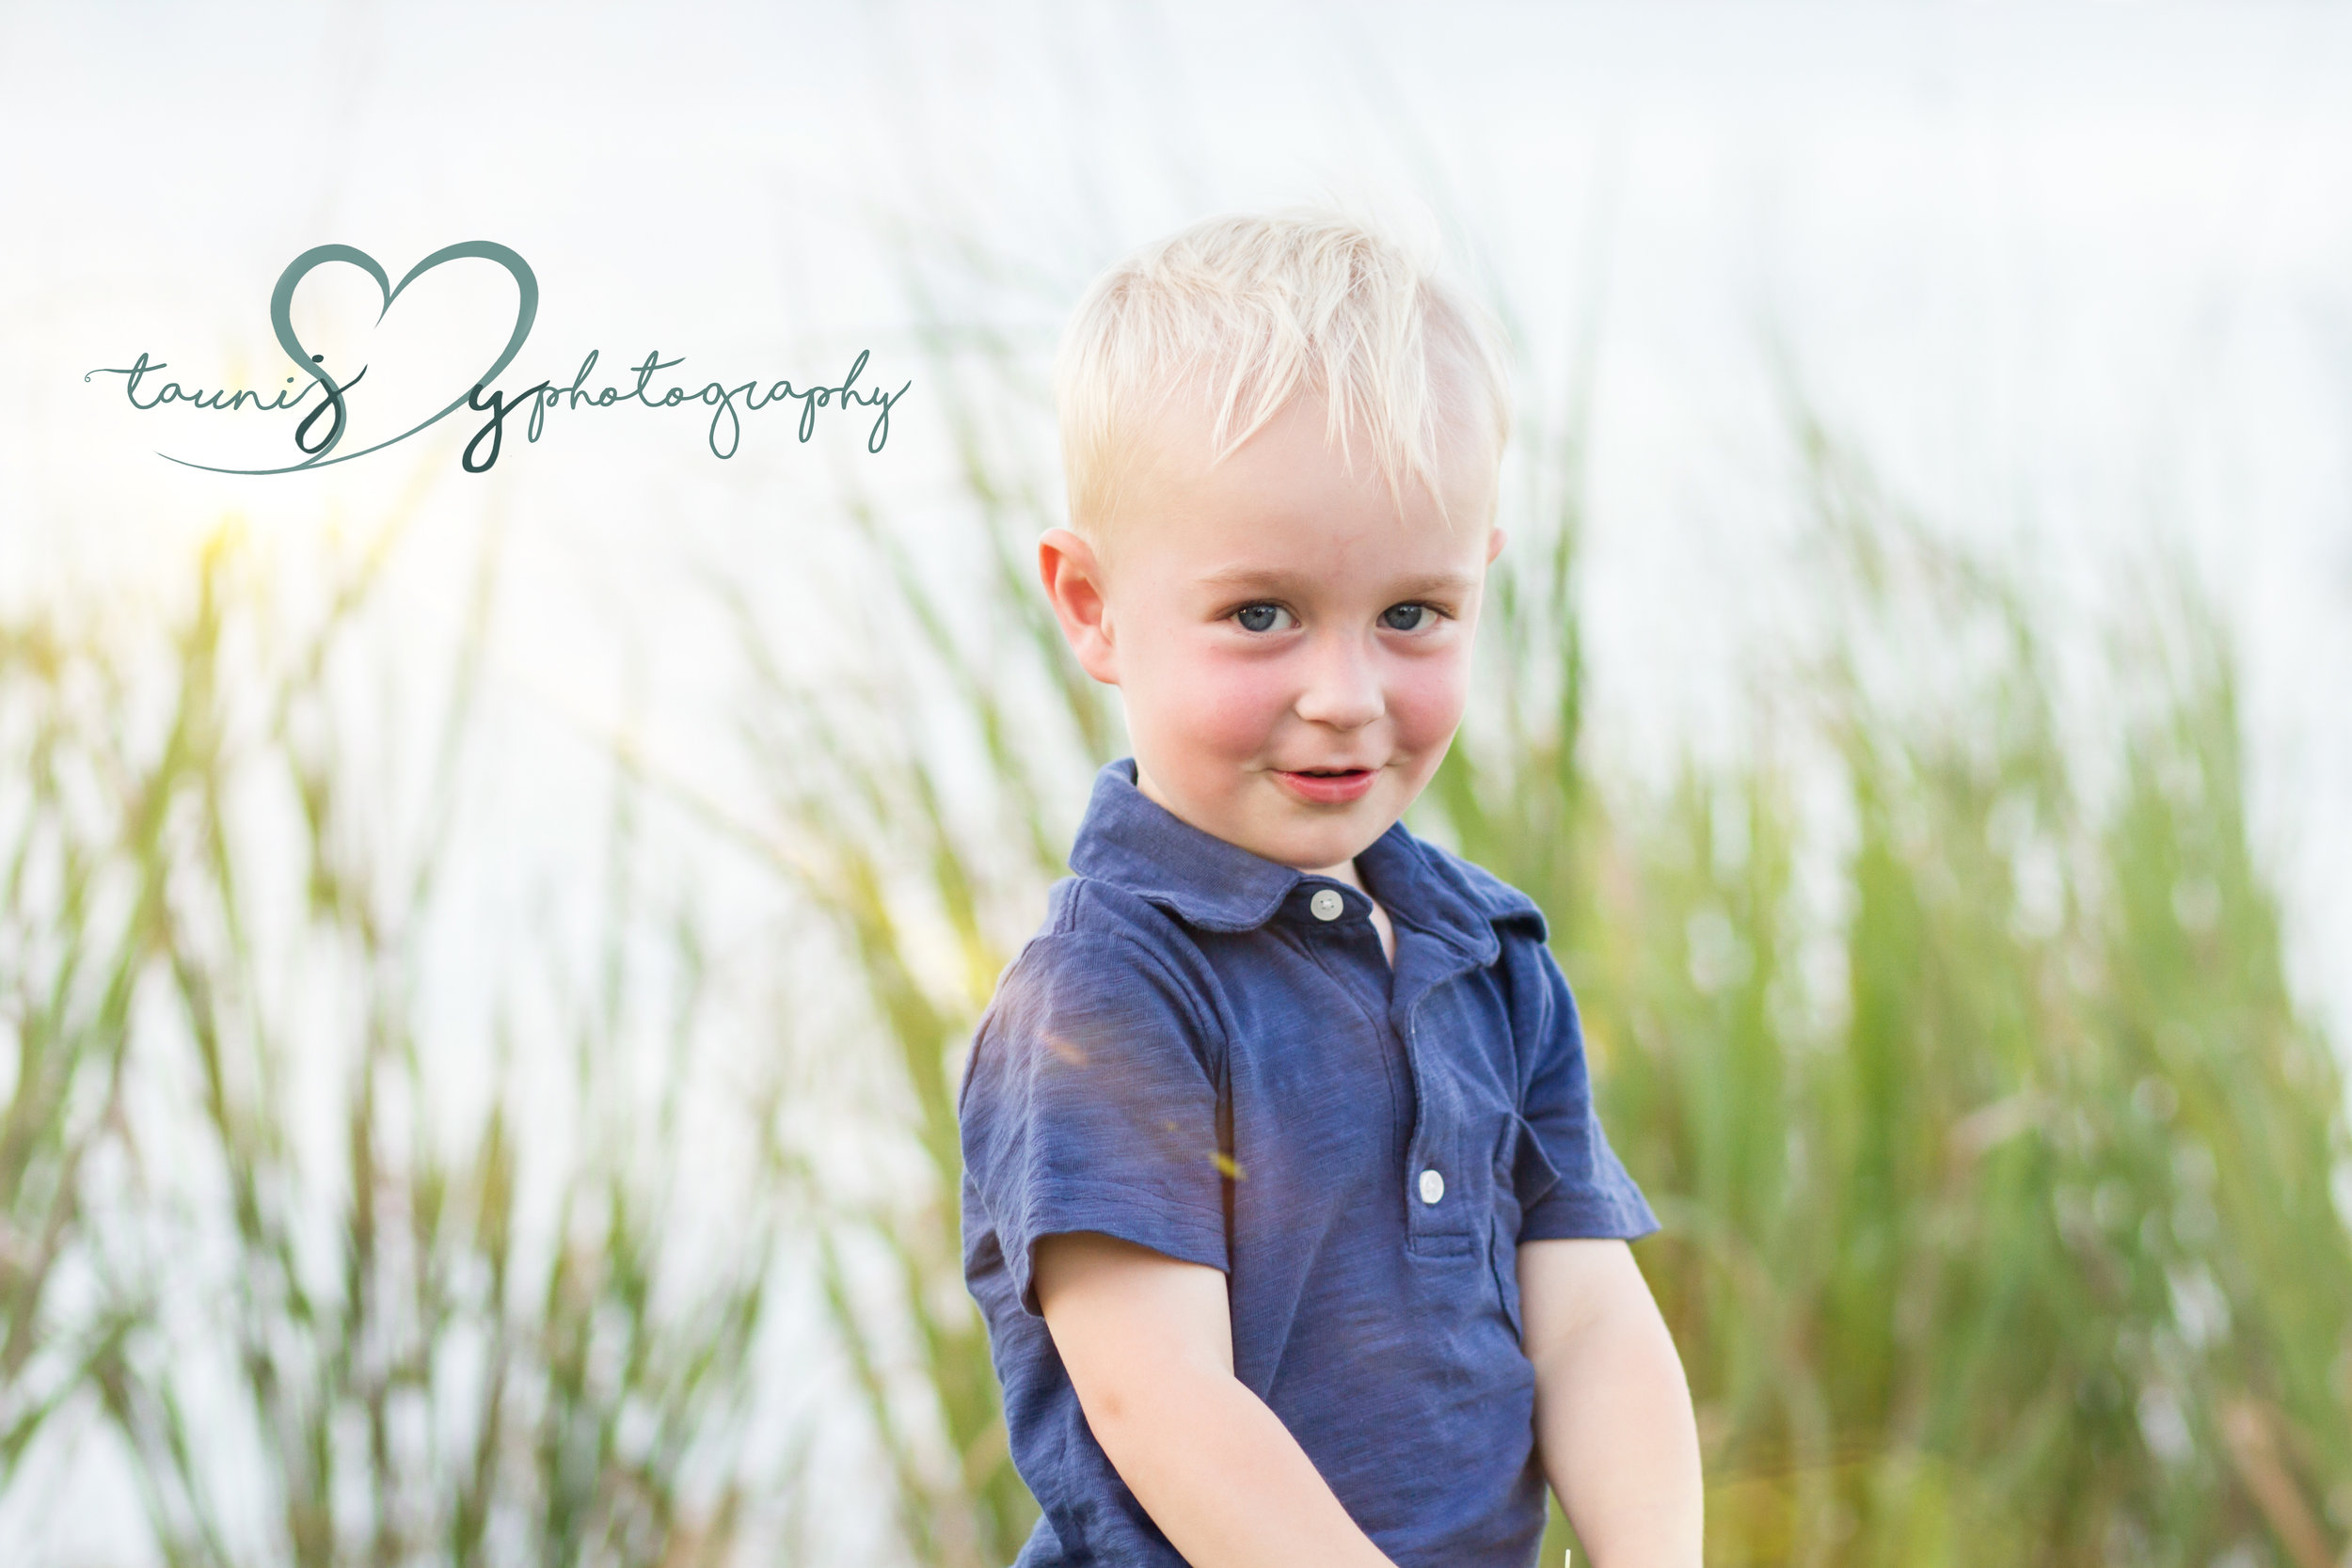 Mom and dad said this big boy was about to turn three! So we got some three year old portraits done while we were out and he was dressed up!